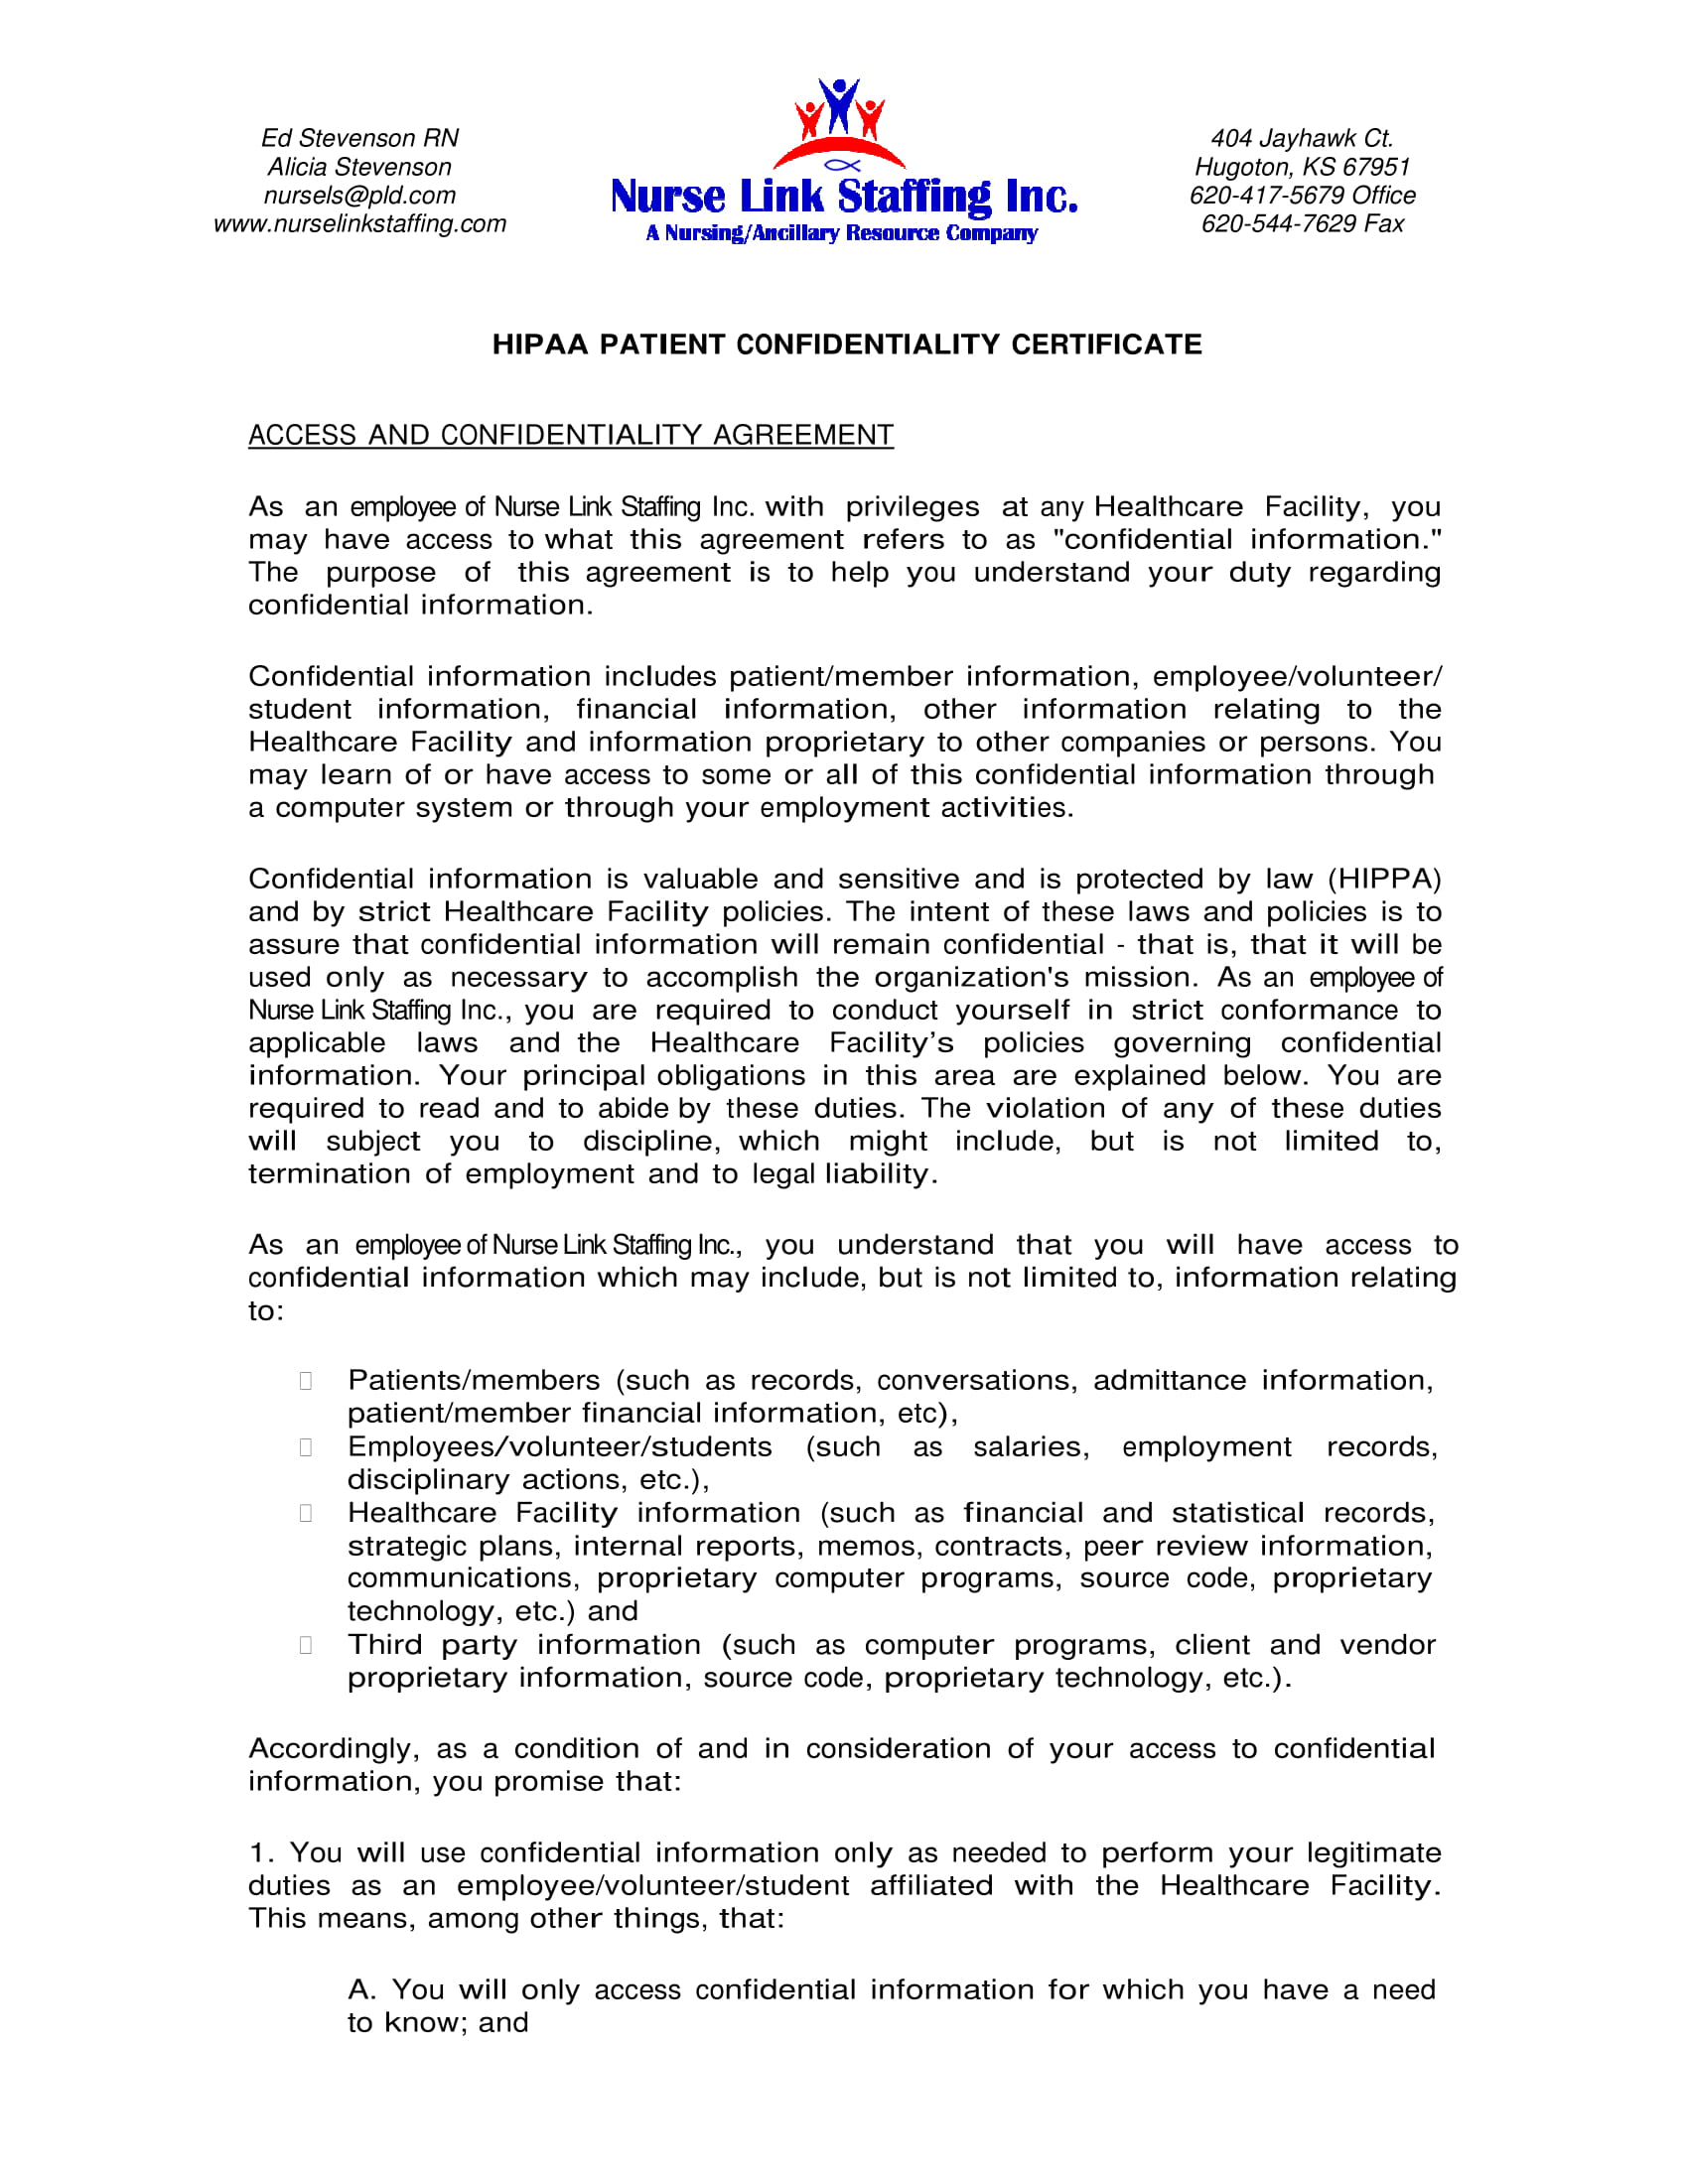 9+ HIPAA Confidentiality Agreement Examples - PDF